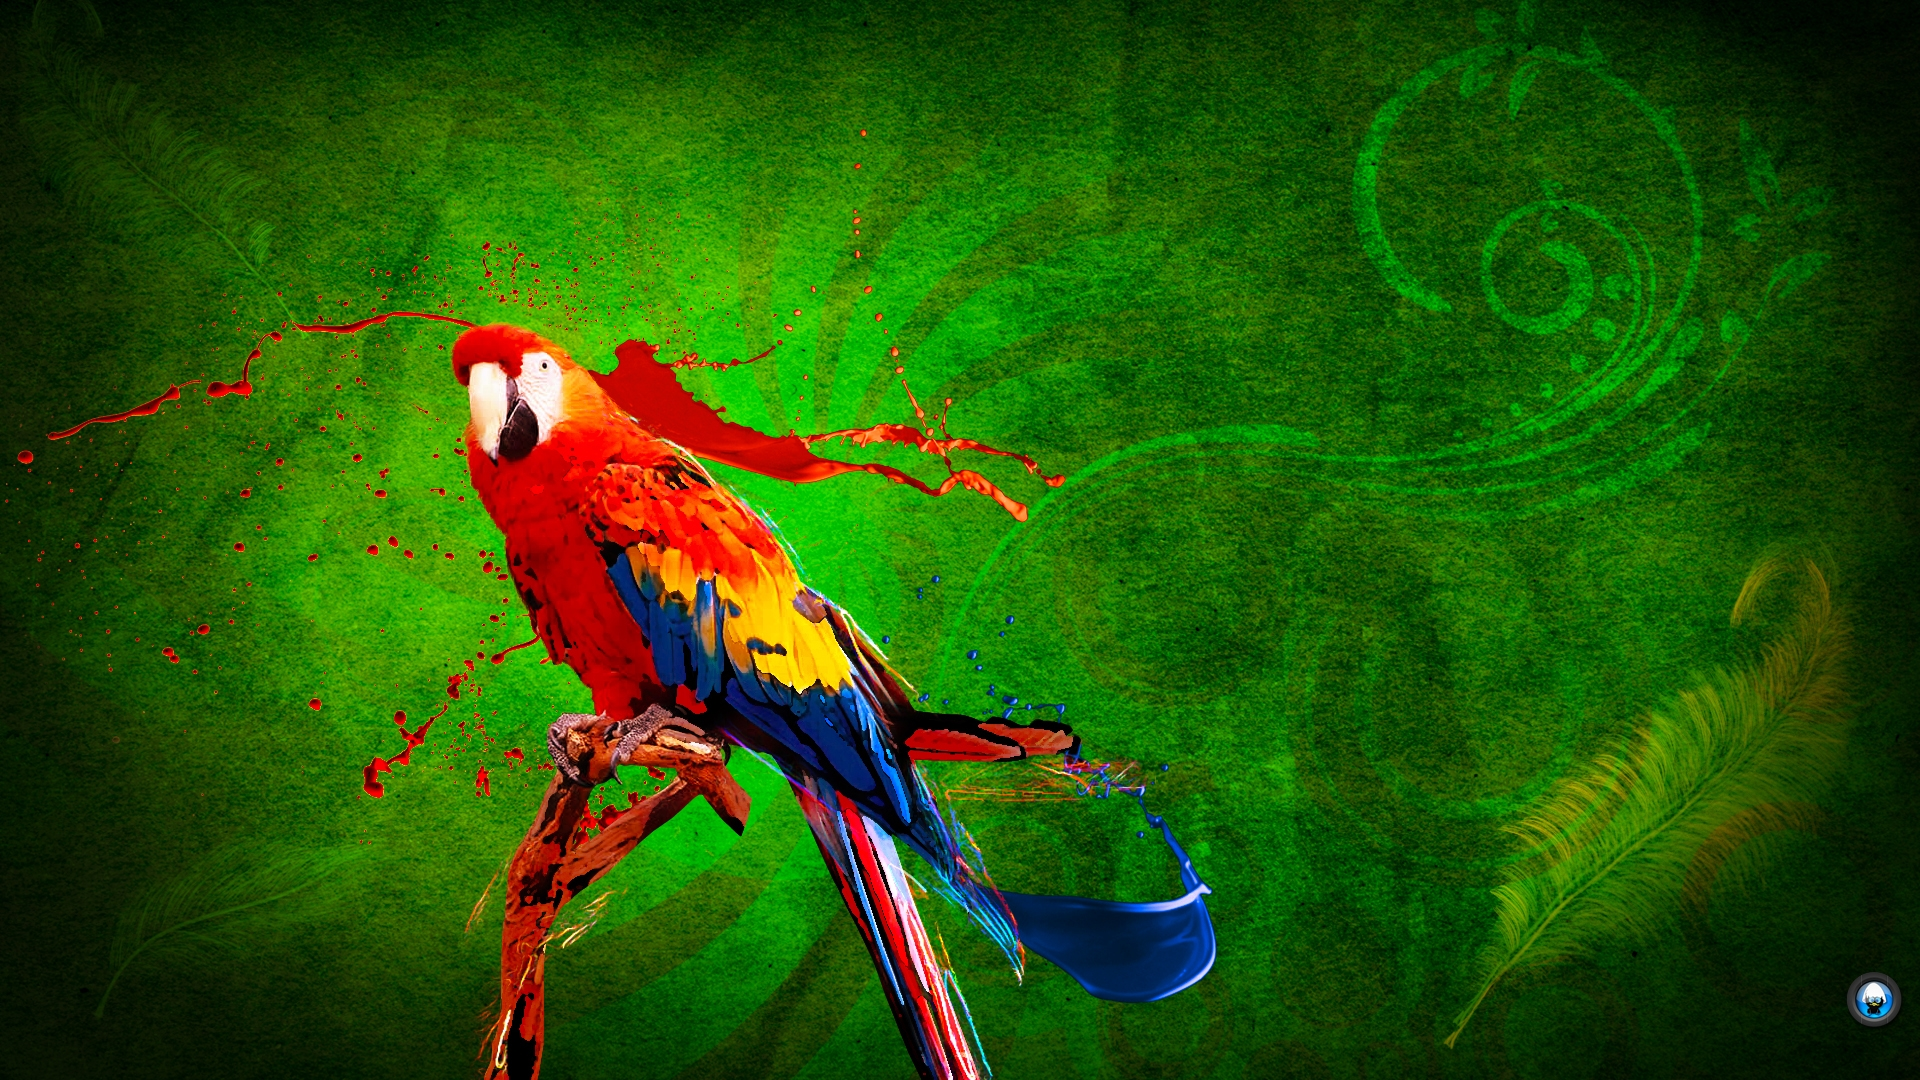 desktop parrot image download - photo #13